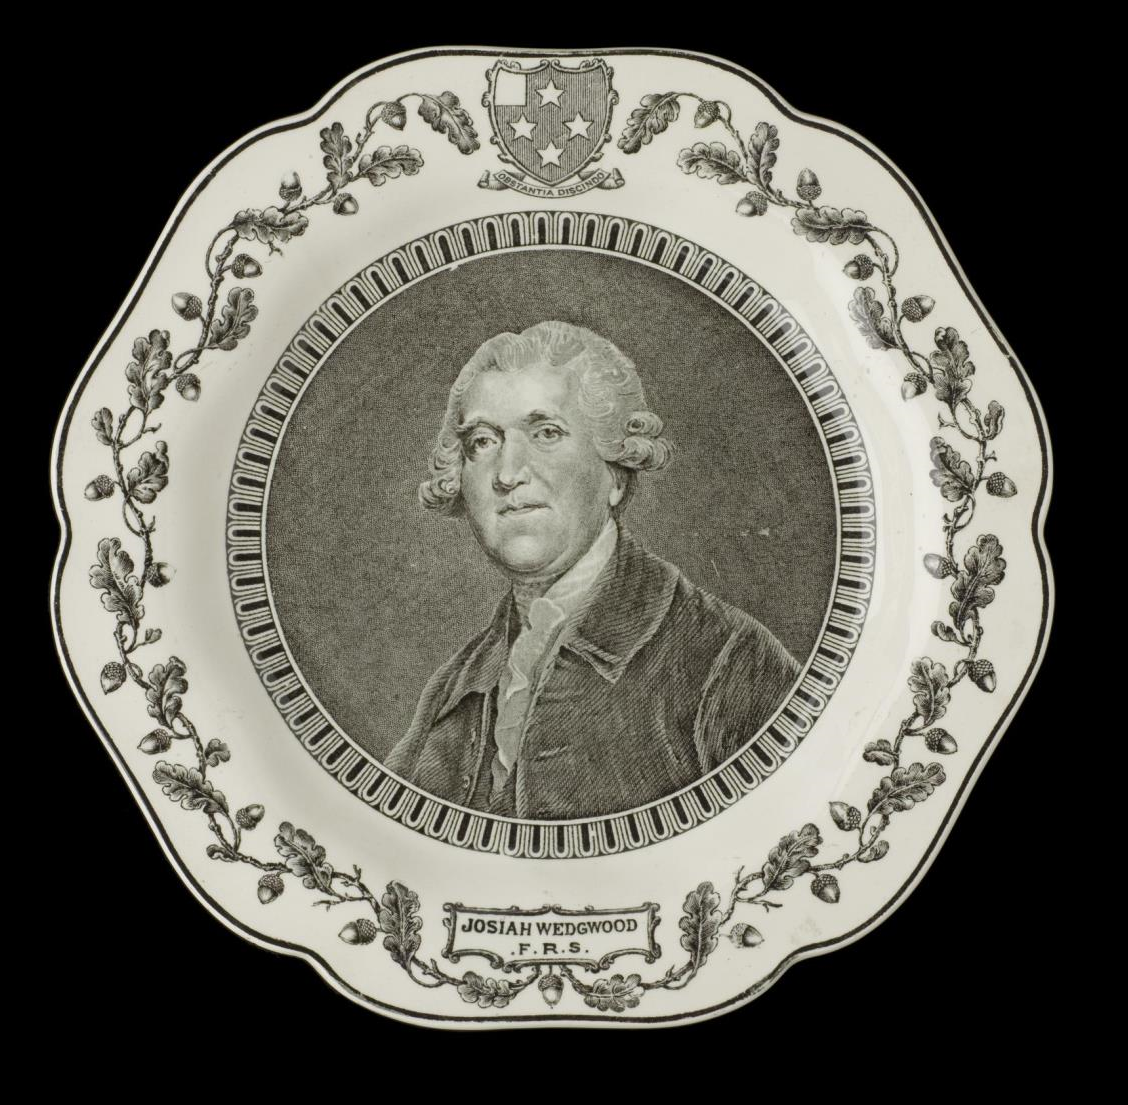 White-glazed transfer-printed earthenware plate with wavy rim, painted in black with an engraved portrait of Josiah Wedgwood after Sir Joshua Reynolds, made to celebrate the 200th anniversary of Wedgwood's birth: English, Staffordshire, Etruria, by Wedgwood, 1930